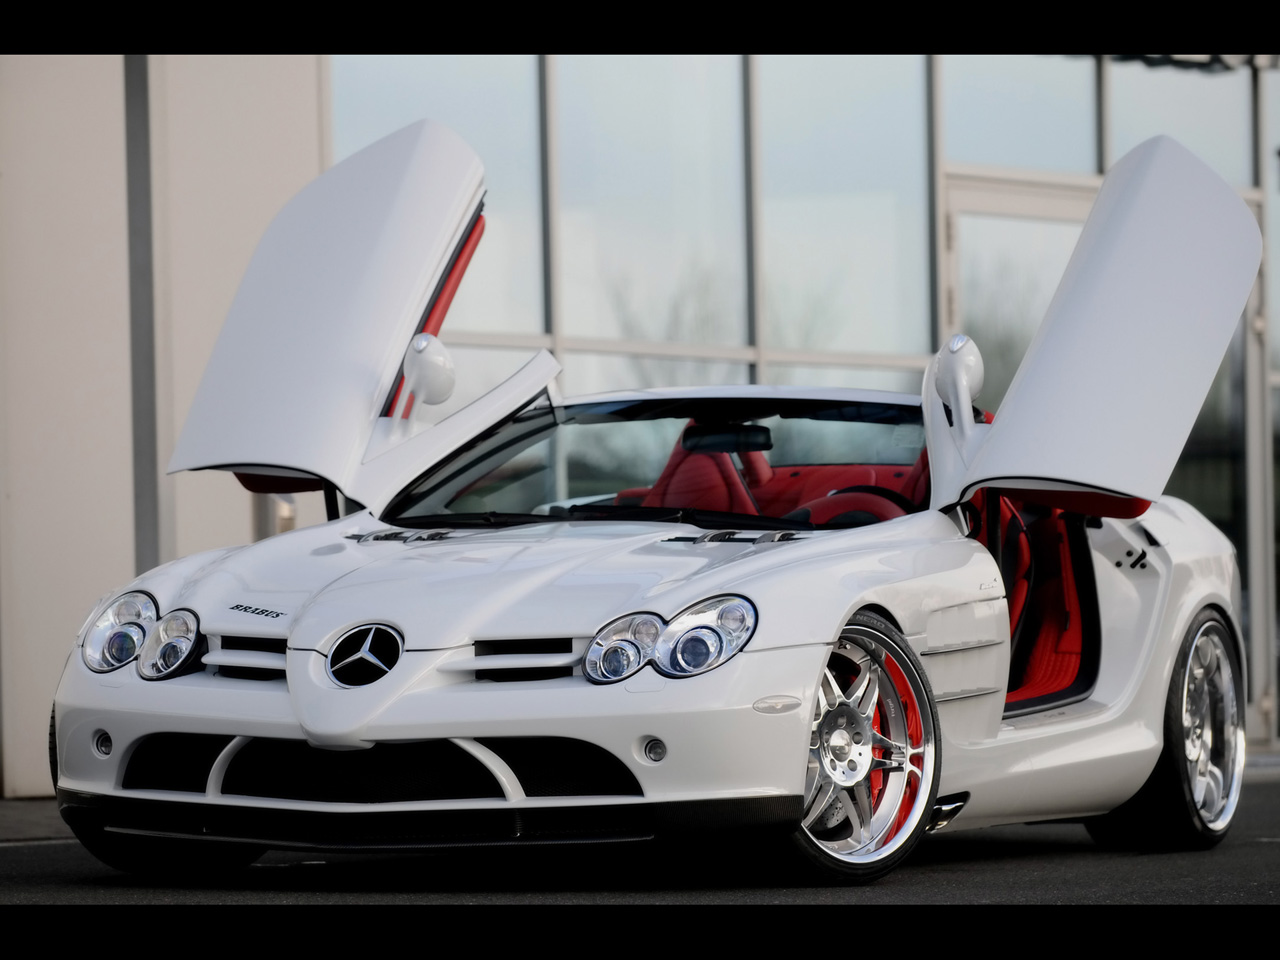 Mercedes slr mclaren world of cars for Cars of mercedes benz